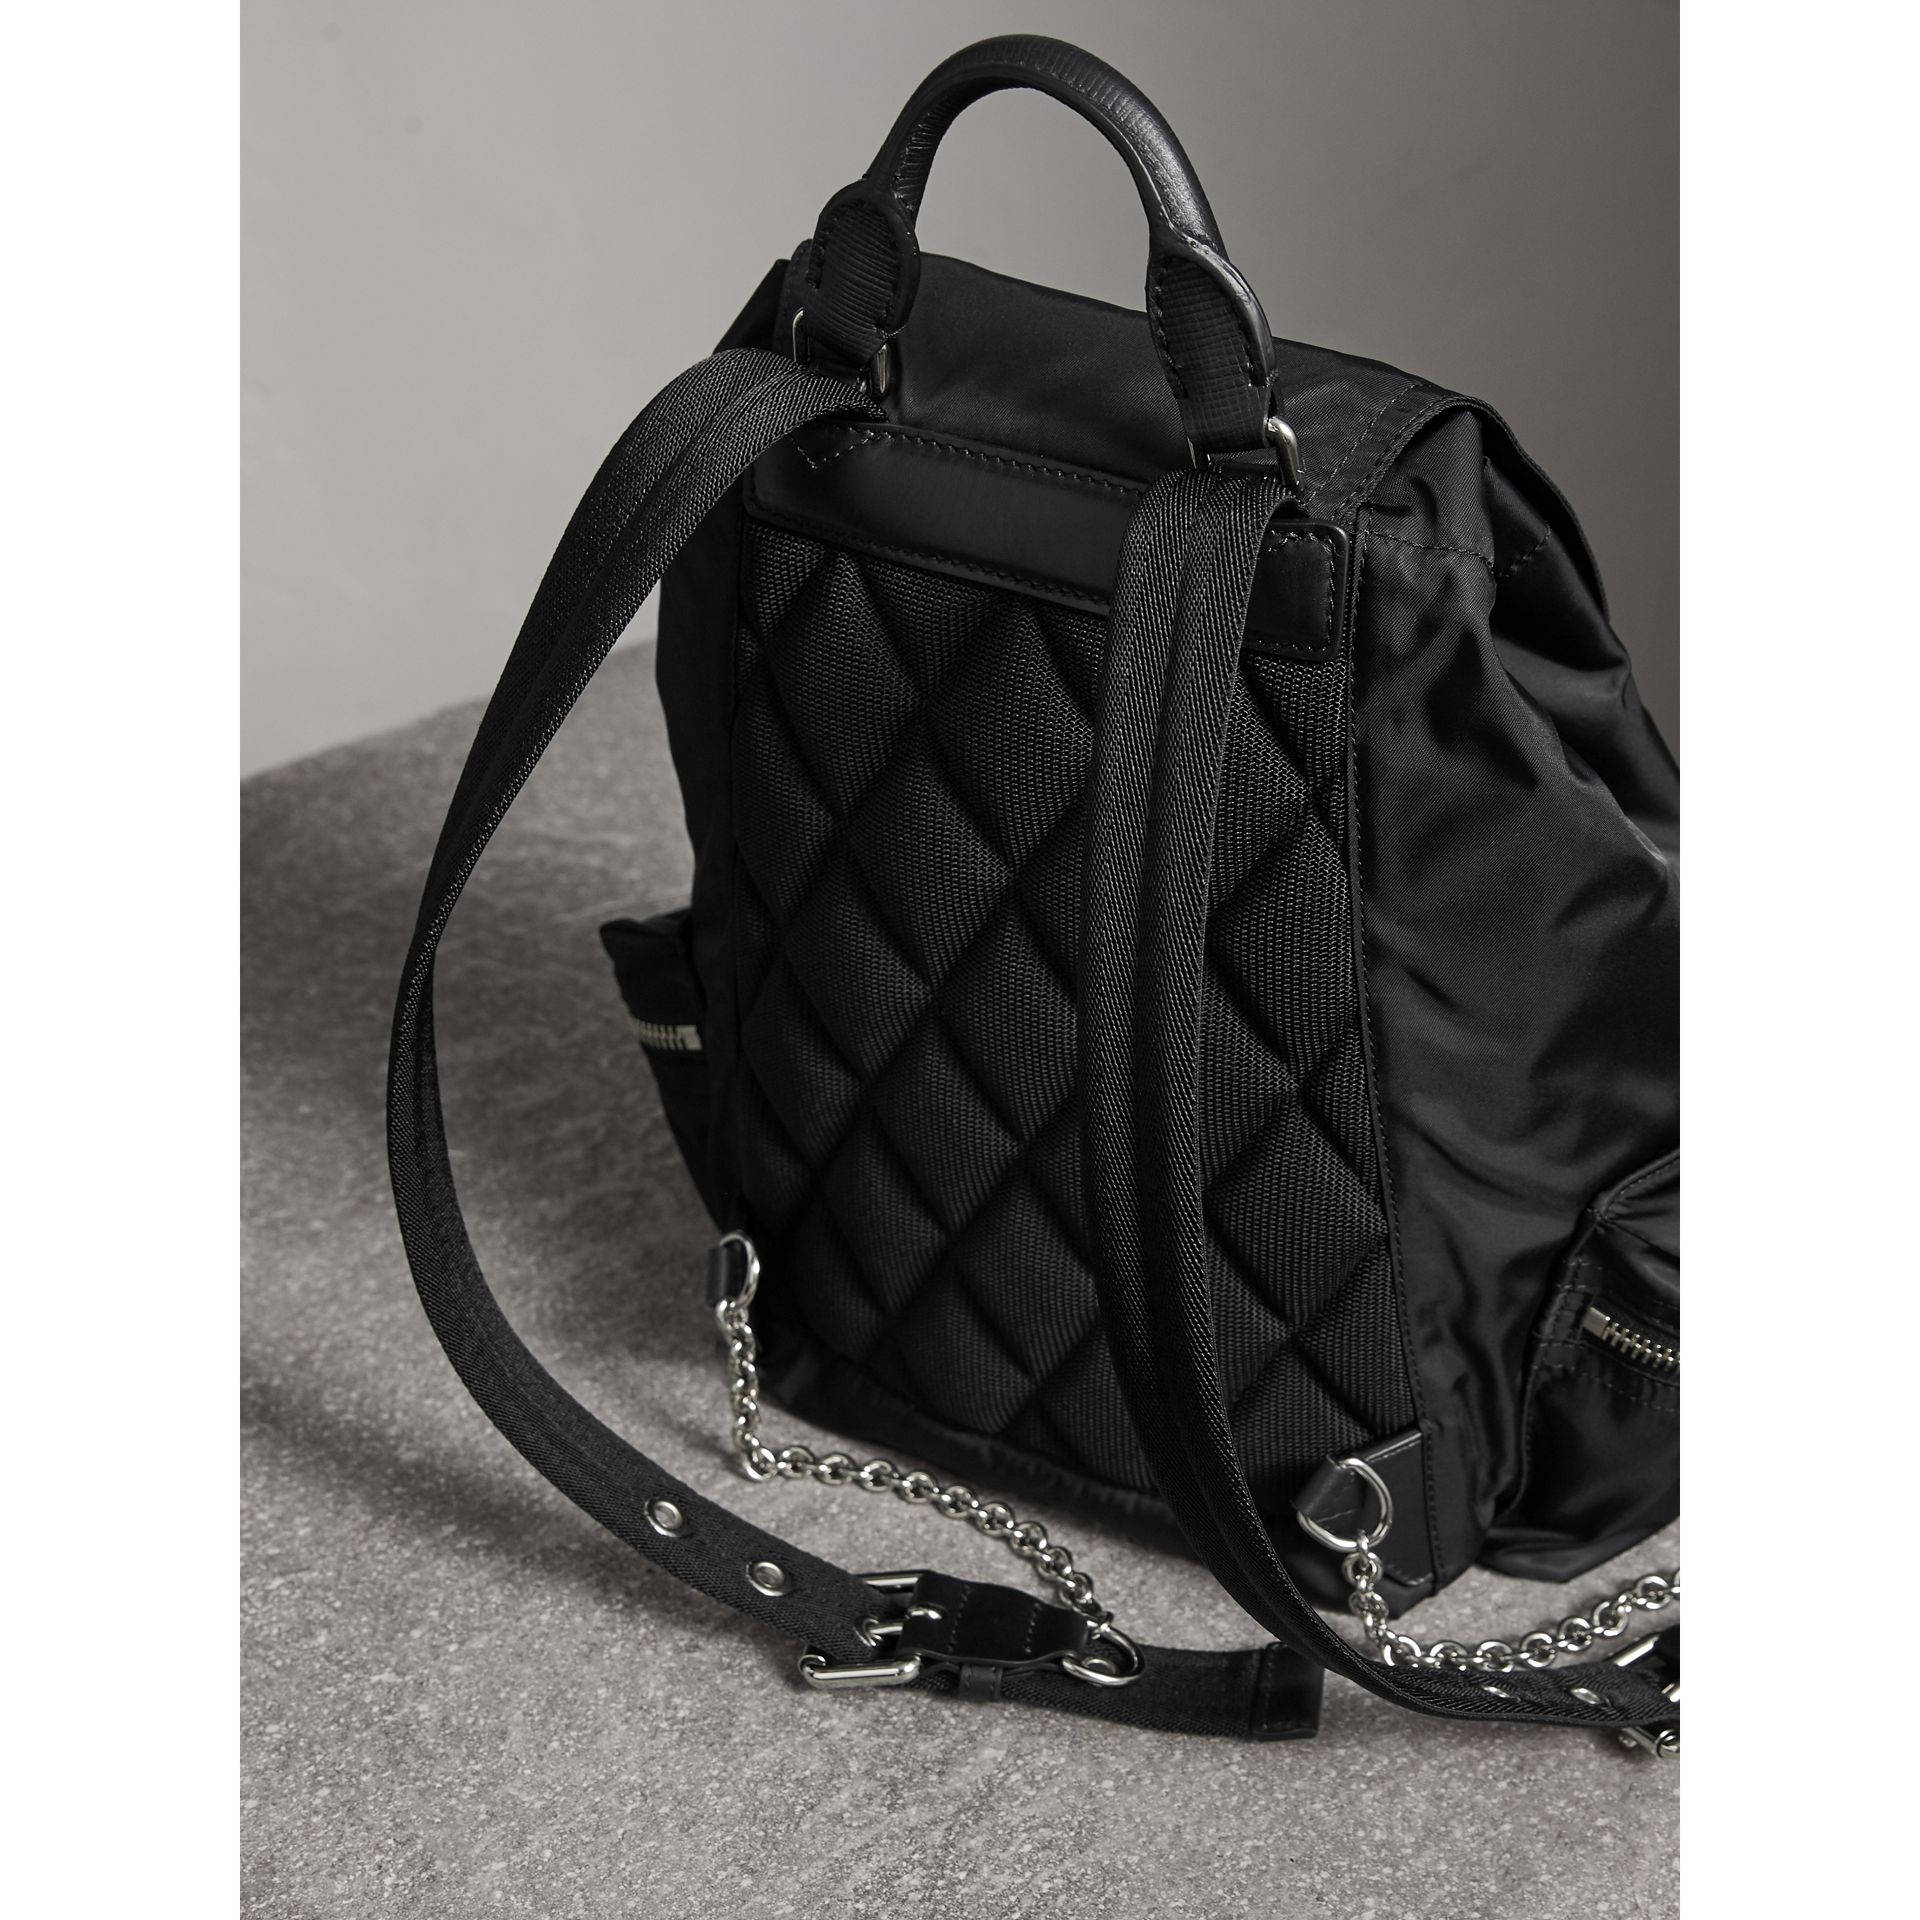 Sac The Rucksack moyen en nylon technique et cuir (Noir/noir) - Femme | Burberry Canada - photo de la galerie 3